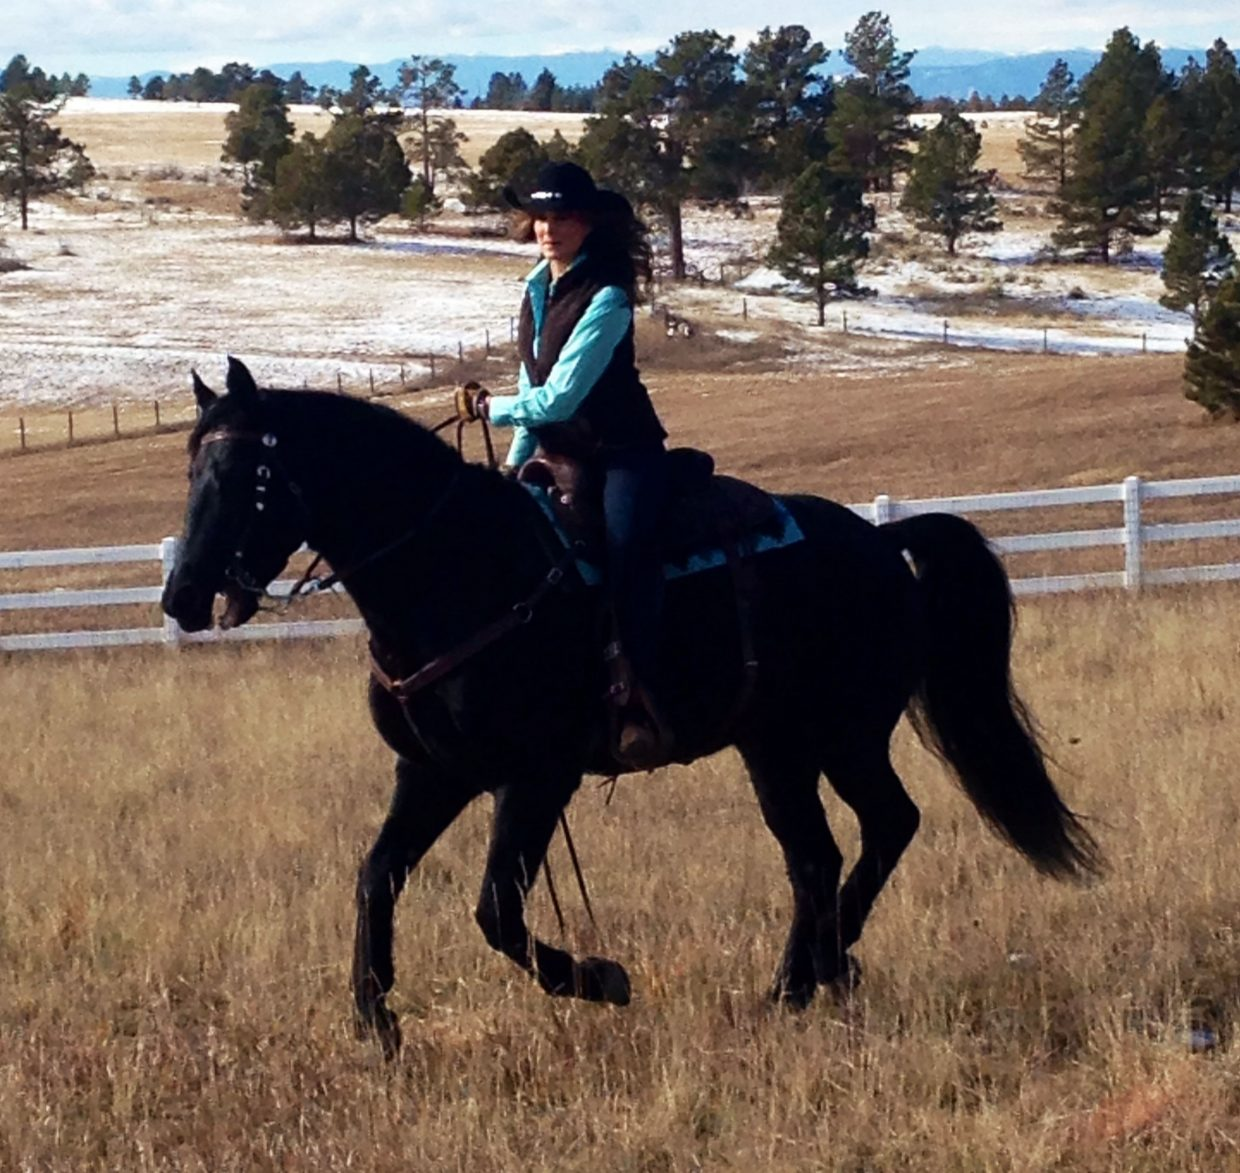 Kathy Sabine has three horses that she rides for pleasure. Her longtime love of horses and agriculture has served her well in Colorado, where so many viewers are involved in agricultural production.